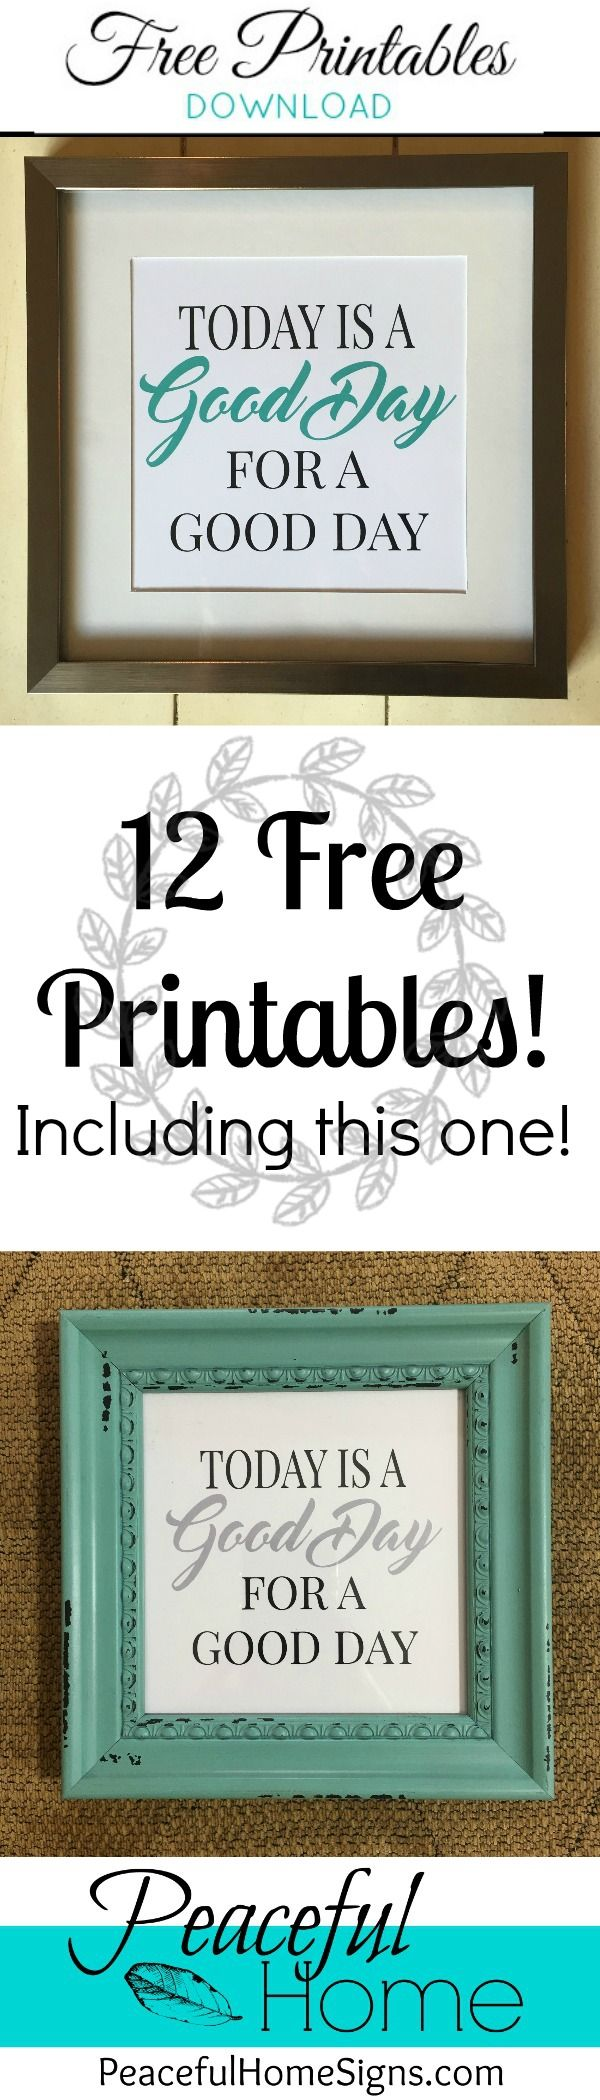 Ideas Quotes: FREE PRINTABLES - Peaceful Home